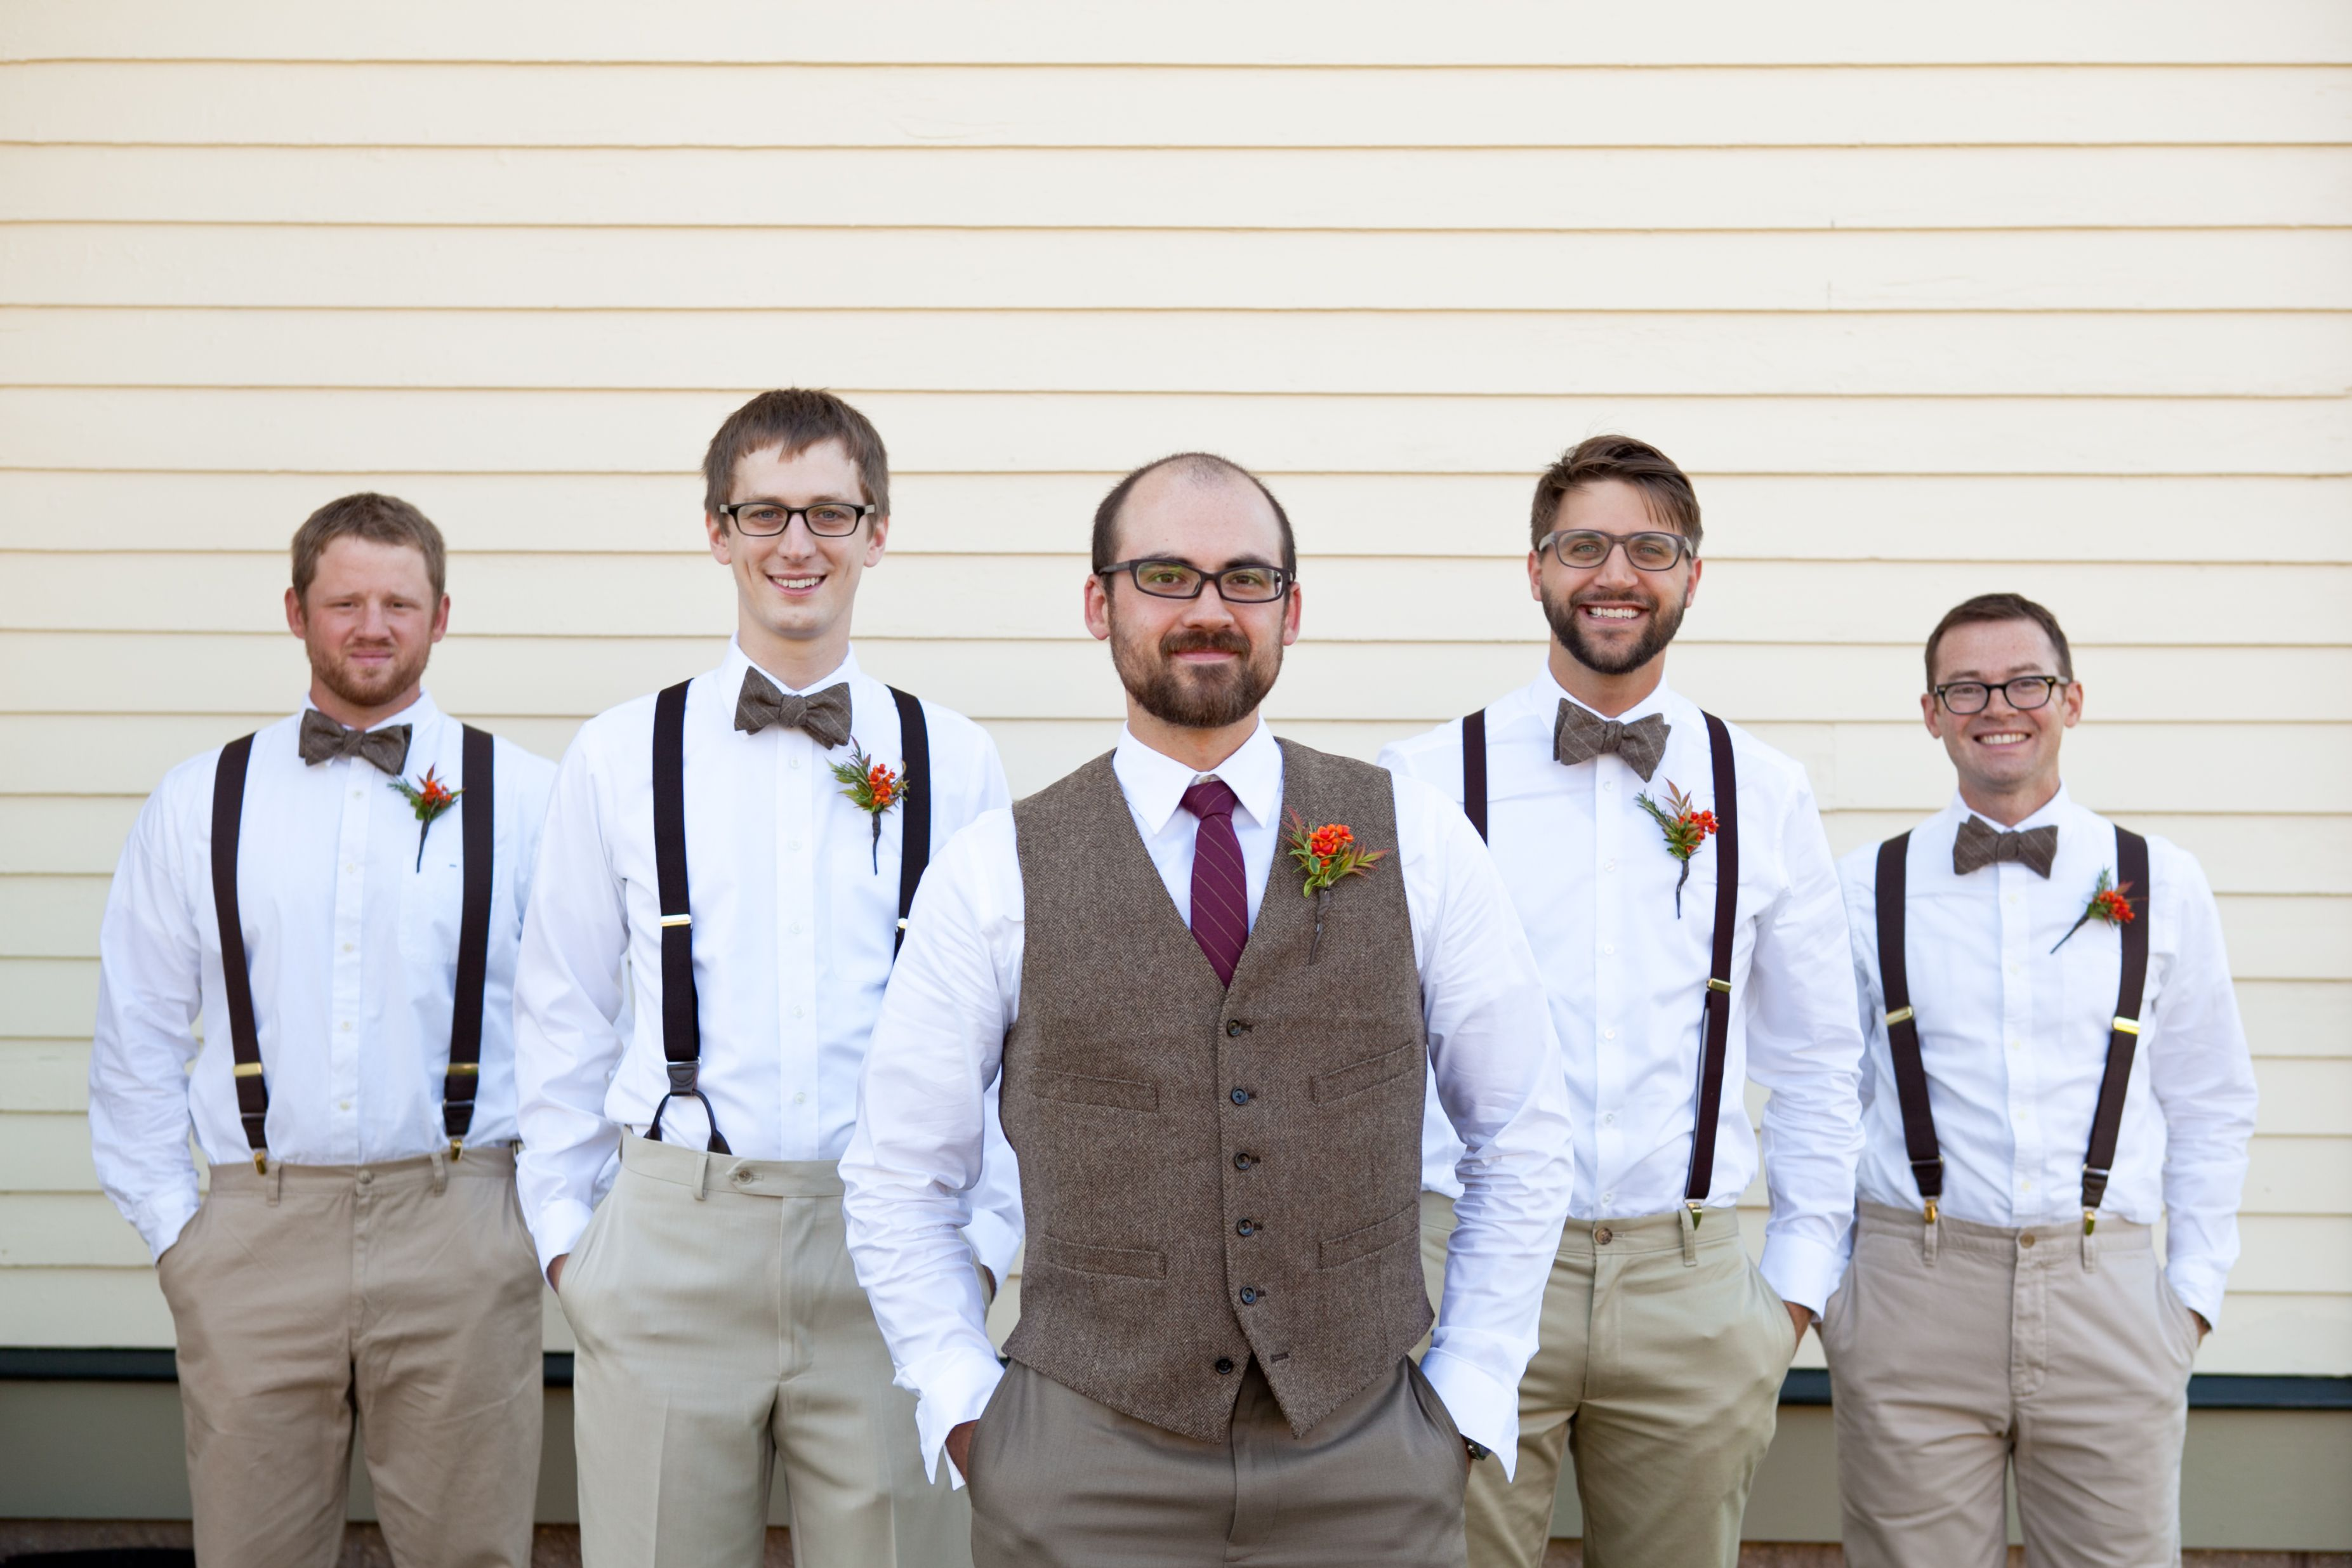 Camping Wedding Groomsmen Attire